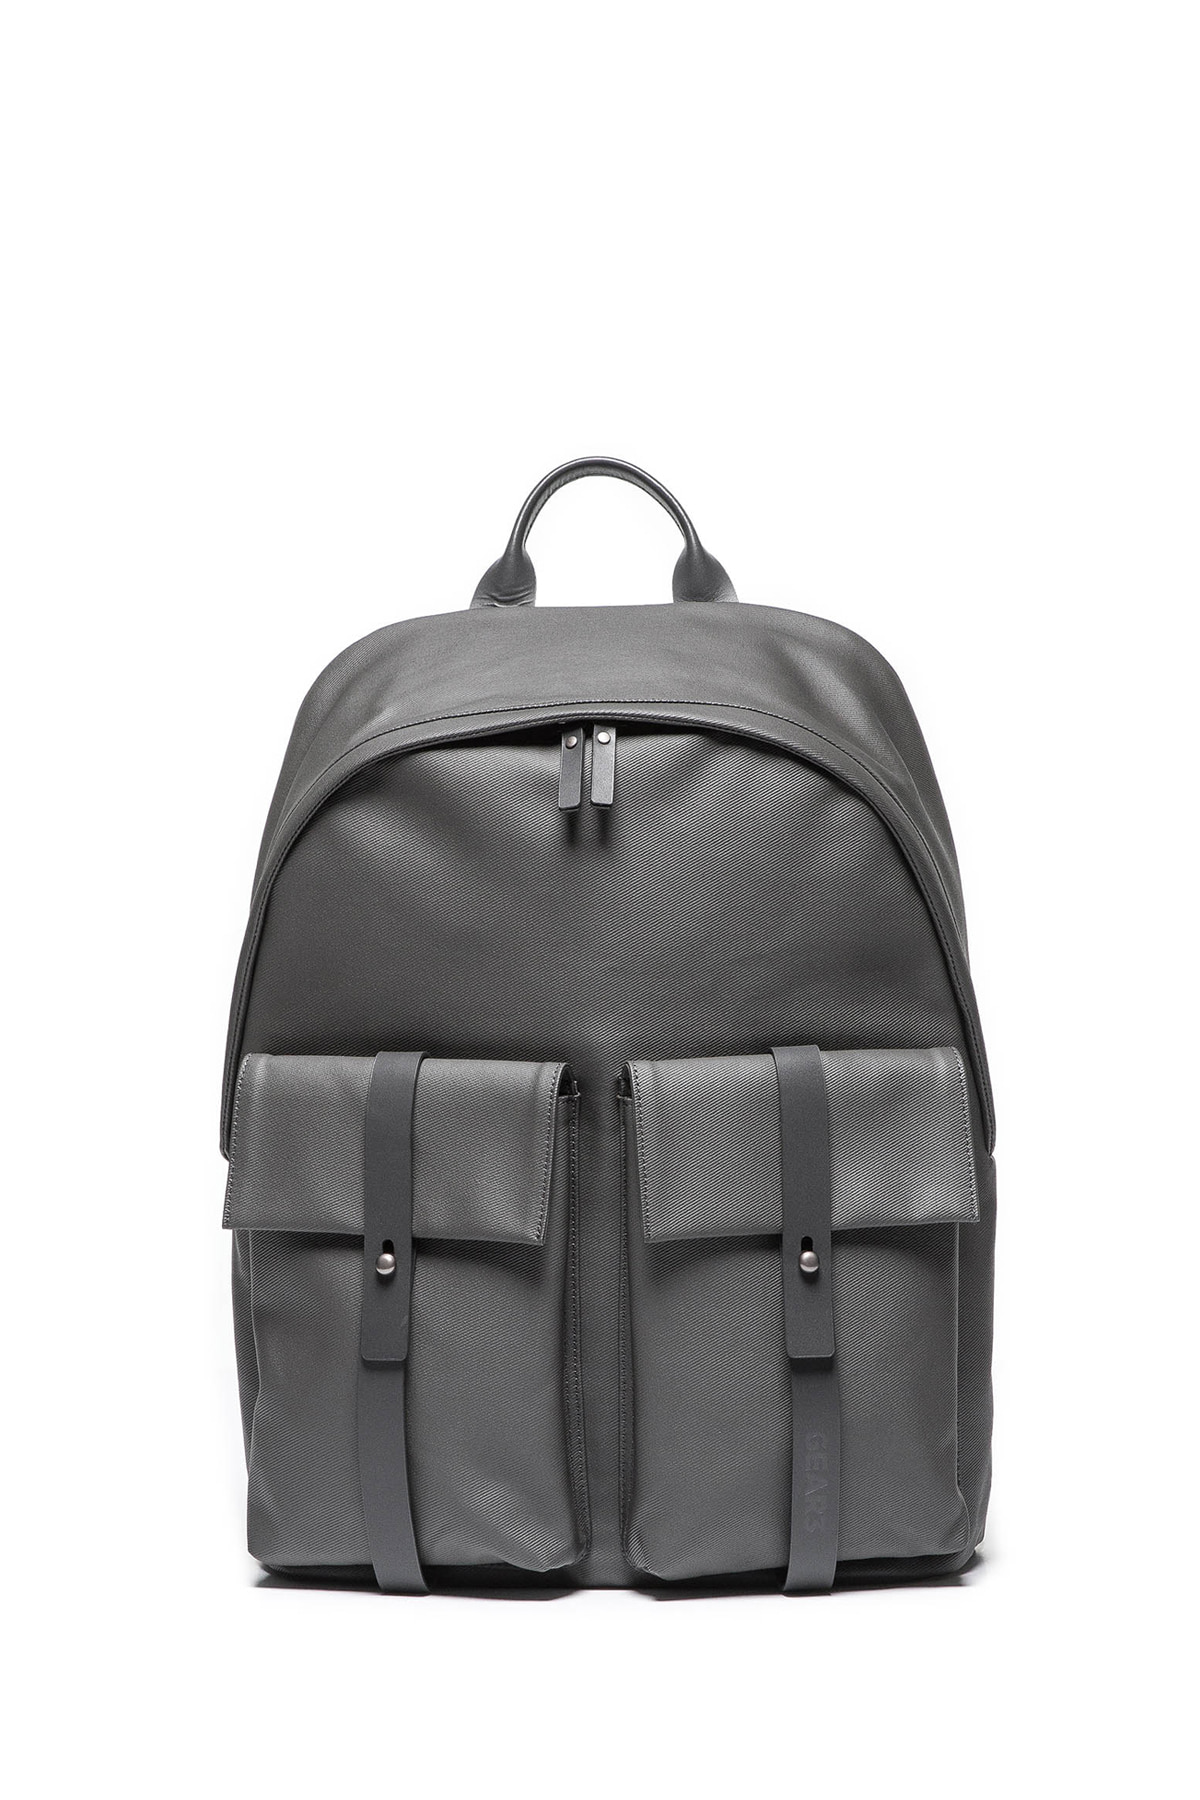 GEAR3 :  CODE3-014-10 Backpack (Grey)